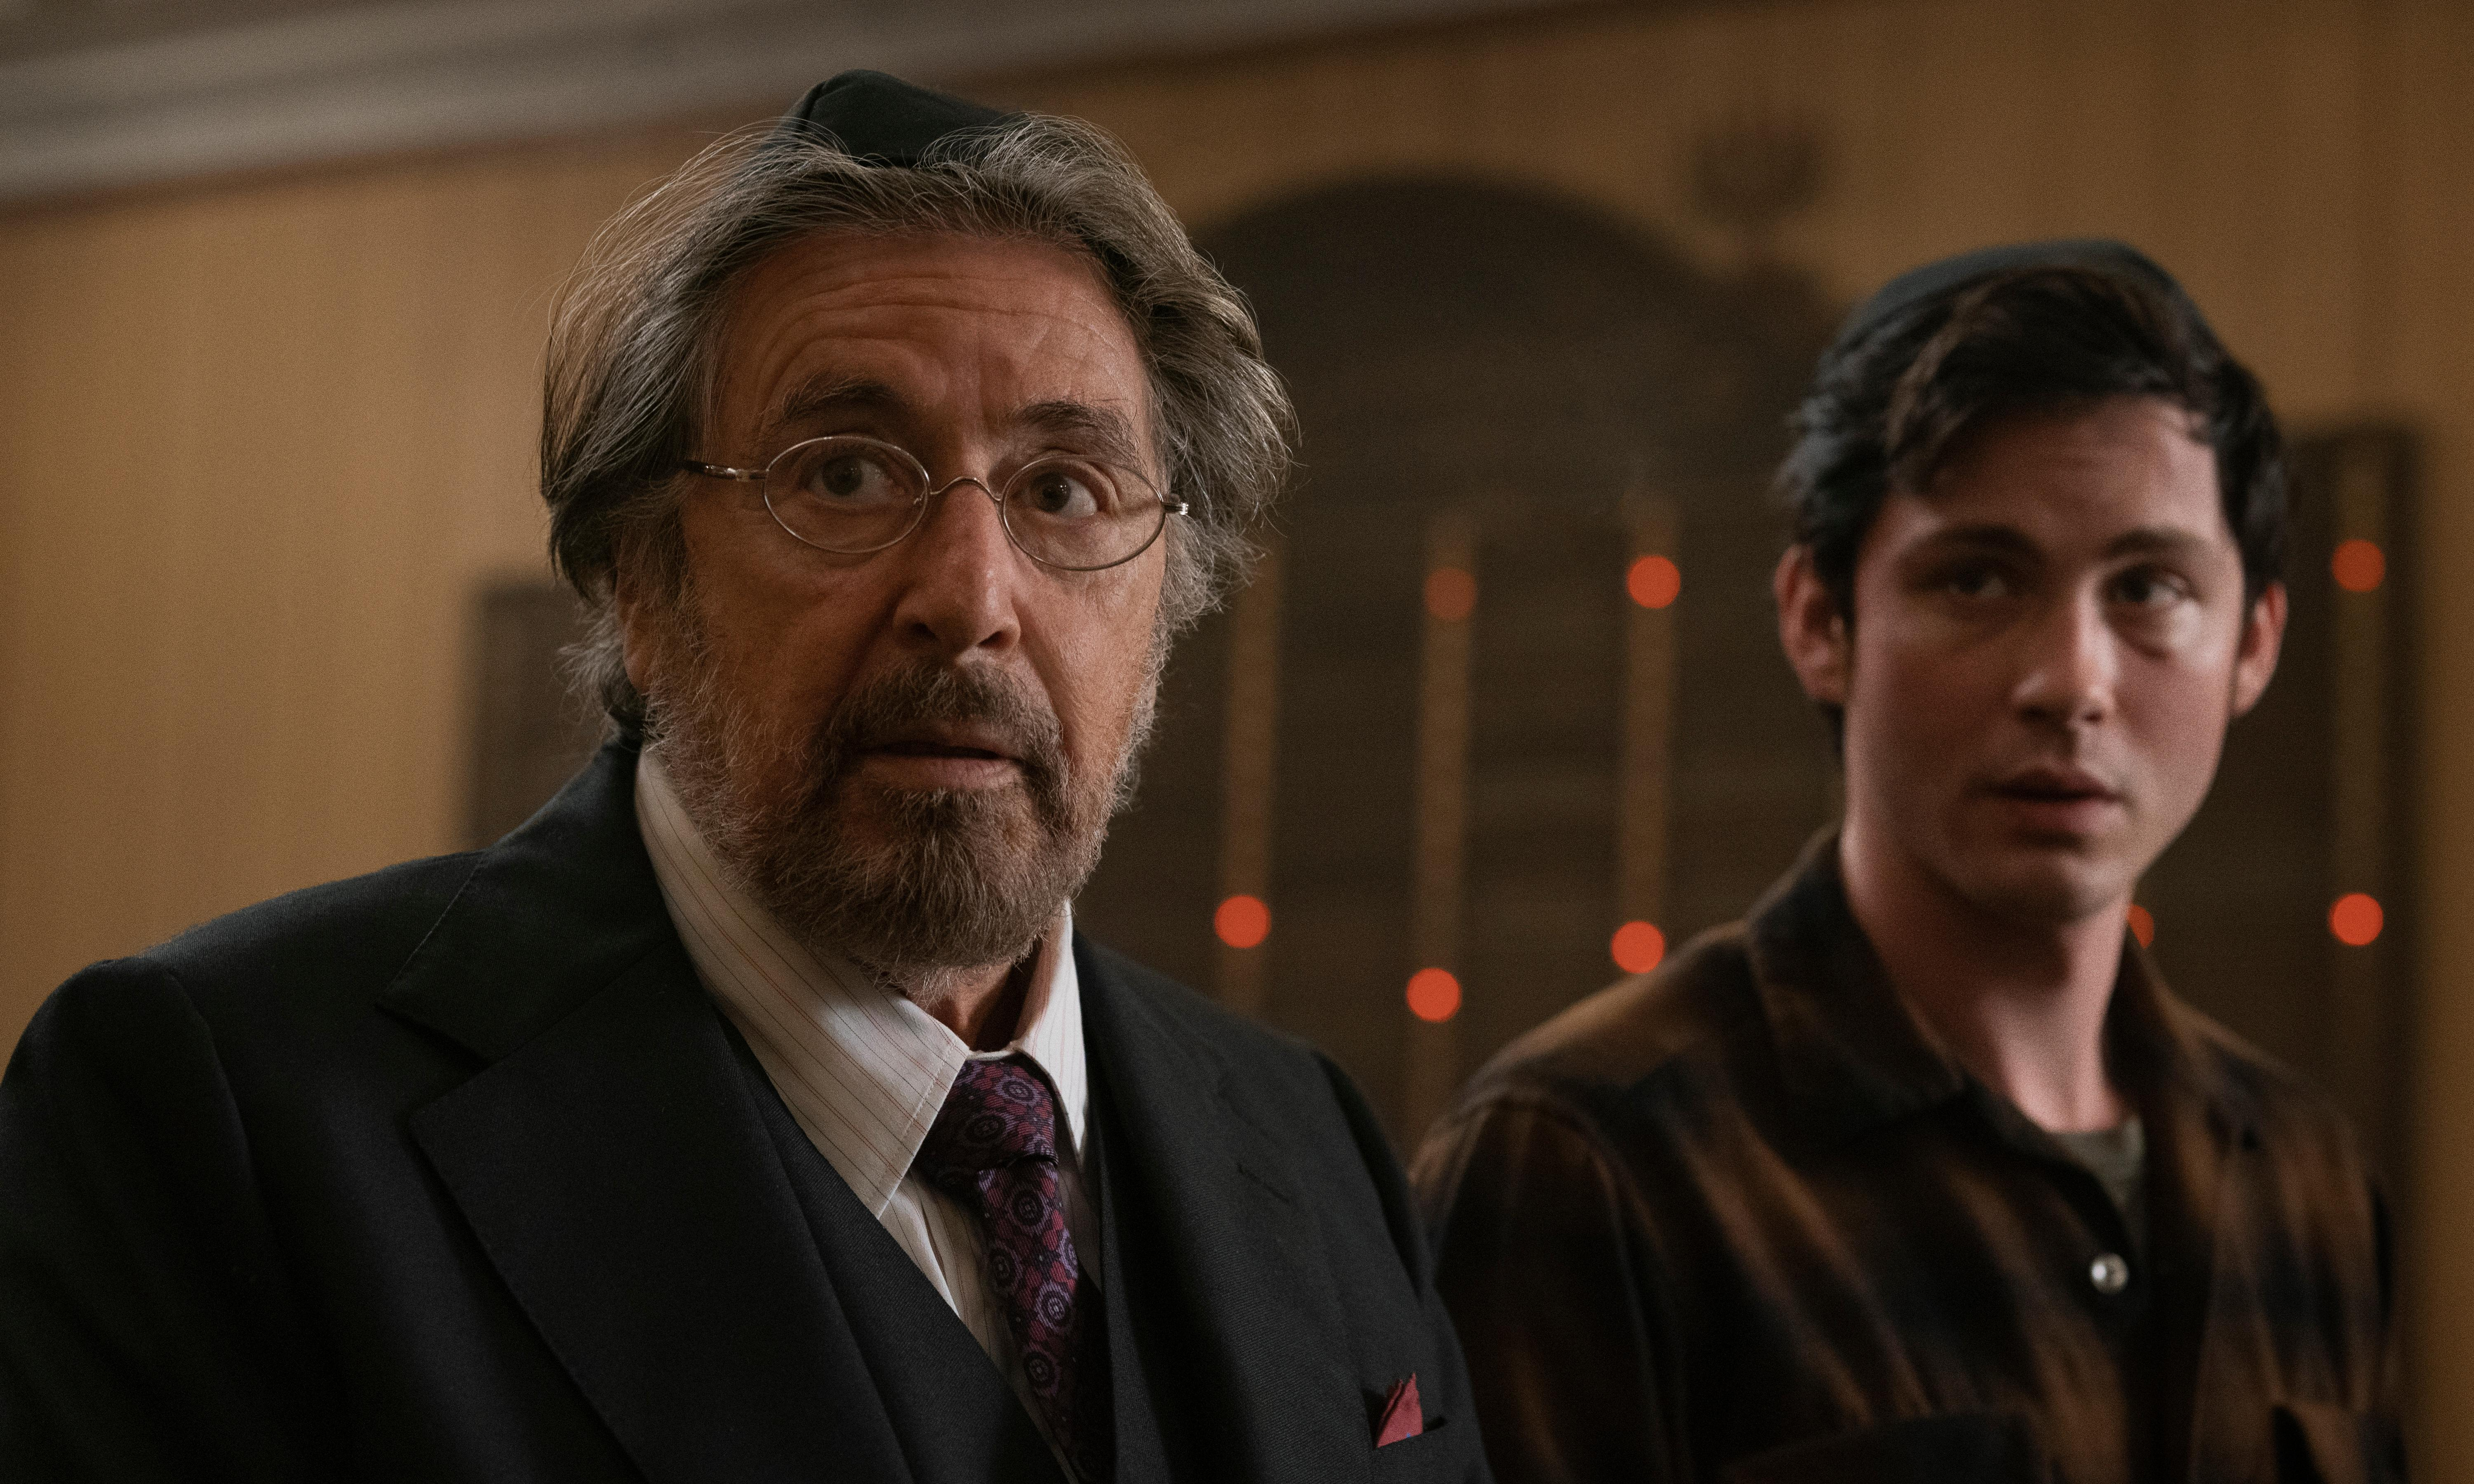 Hunters review – Al Pacino's Nazi killer drama is dangerously insensitive